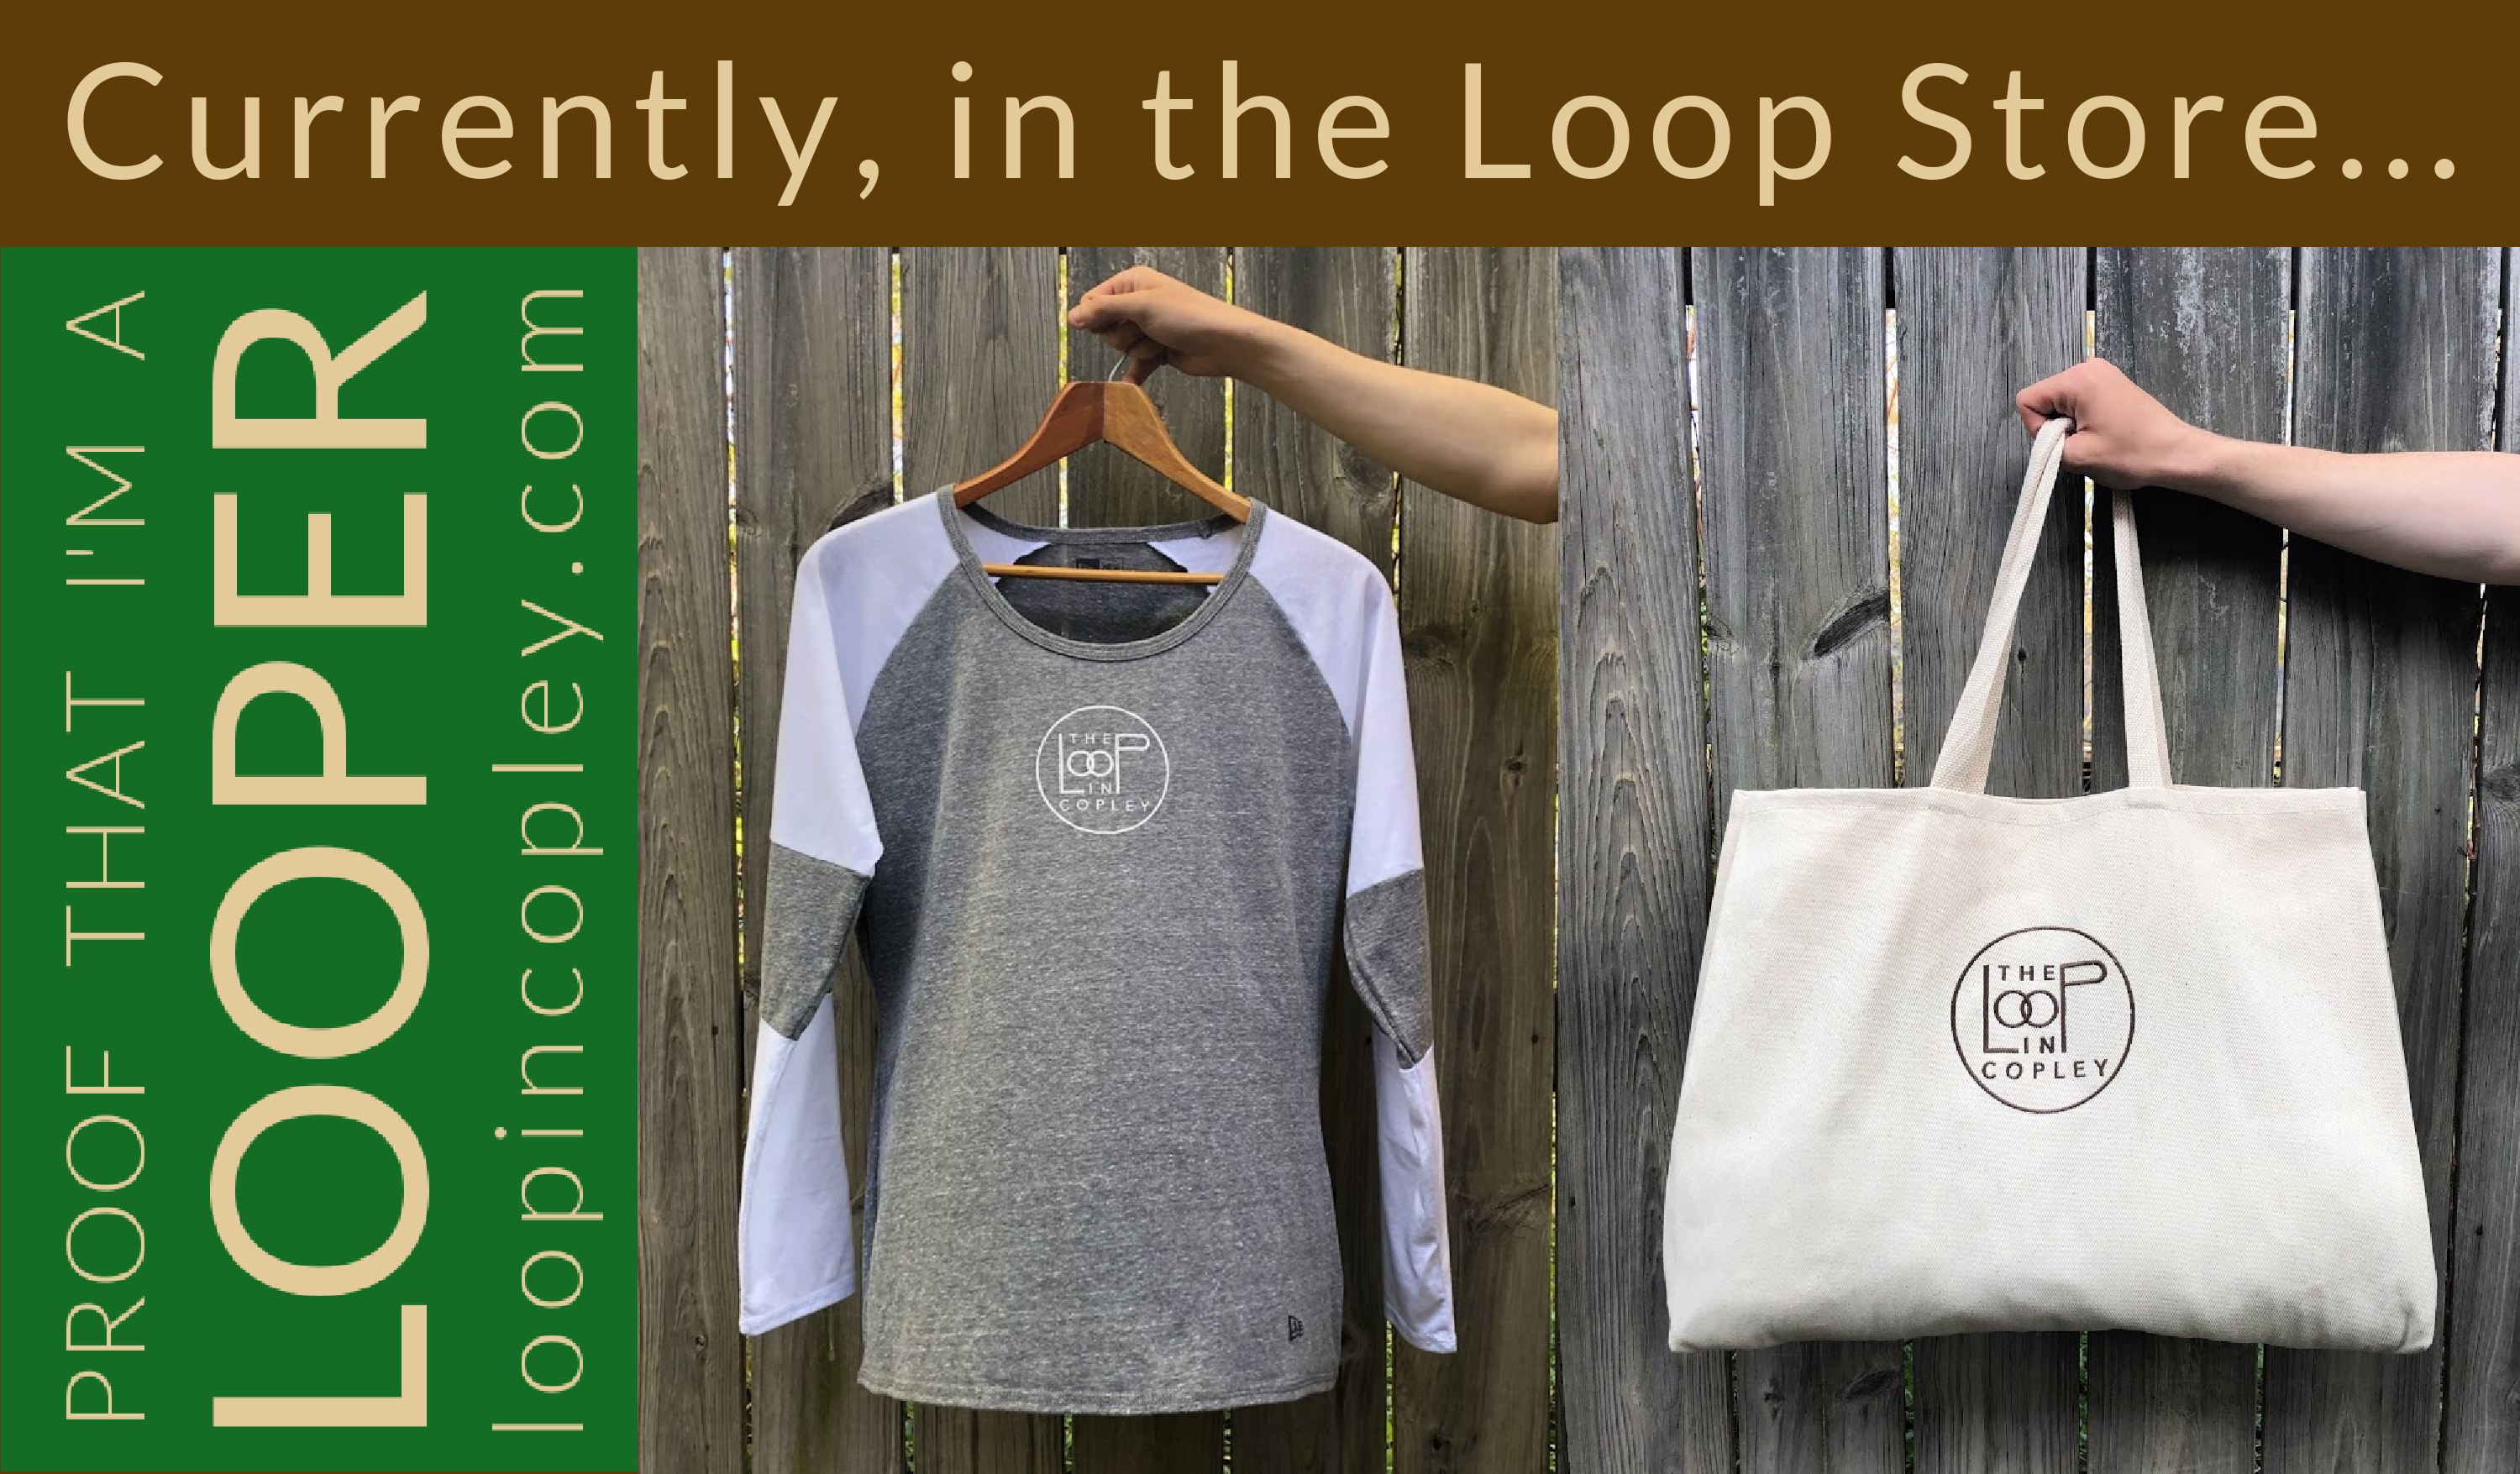 Currently in the Loop Store